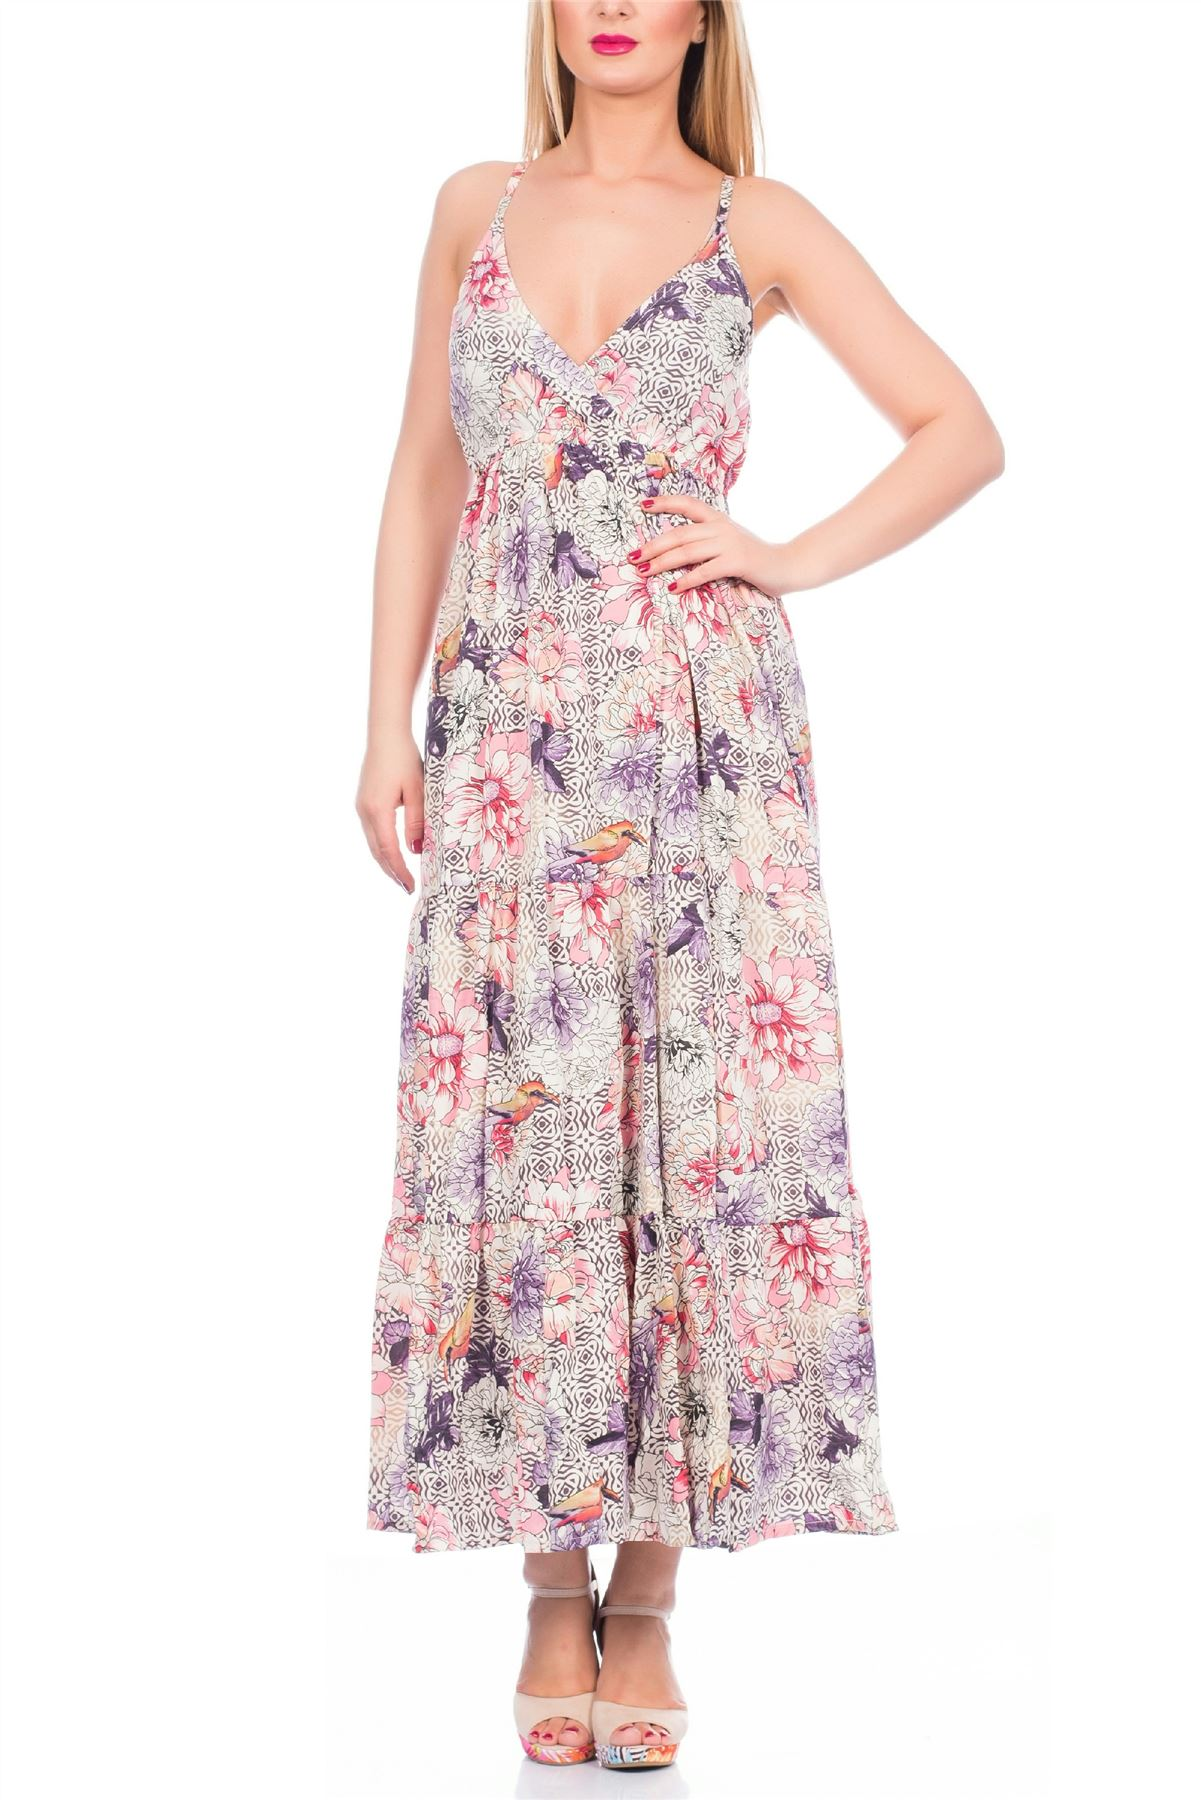 GRECERELLE Women's Sleeveless Racerback and Long Sleeve Loose Plain Maxi Dresses Casual Long Dresses with Pockets by GRECERELLE $ - $ $ 16 99 - $ 22 99 Prime.